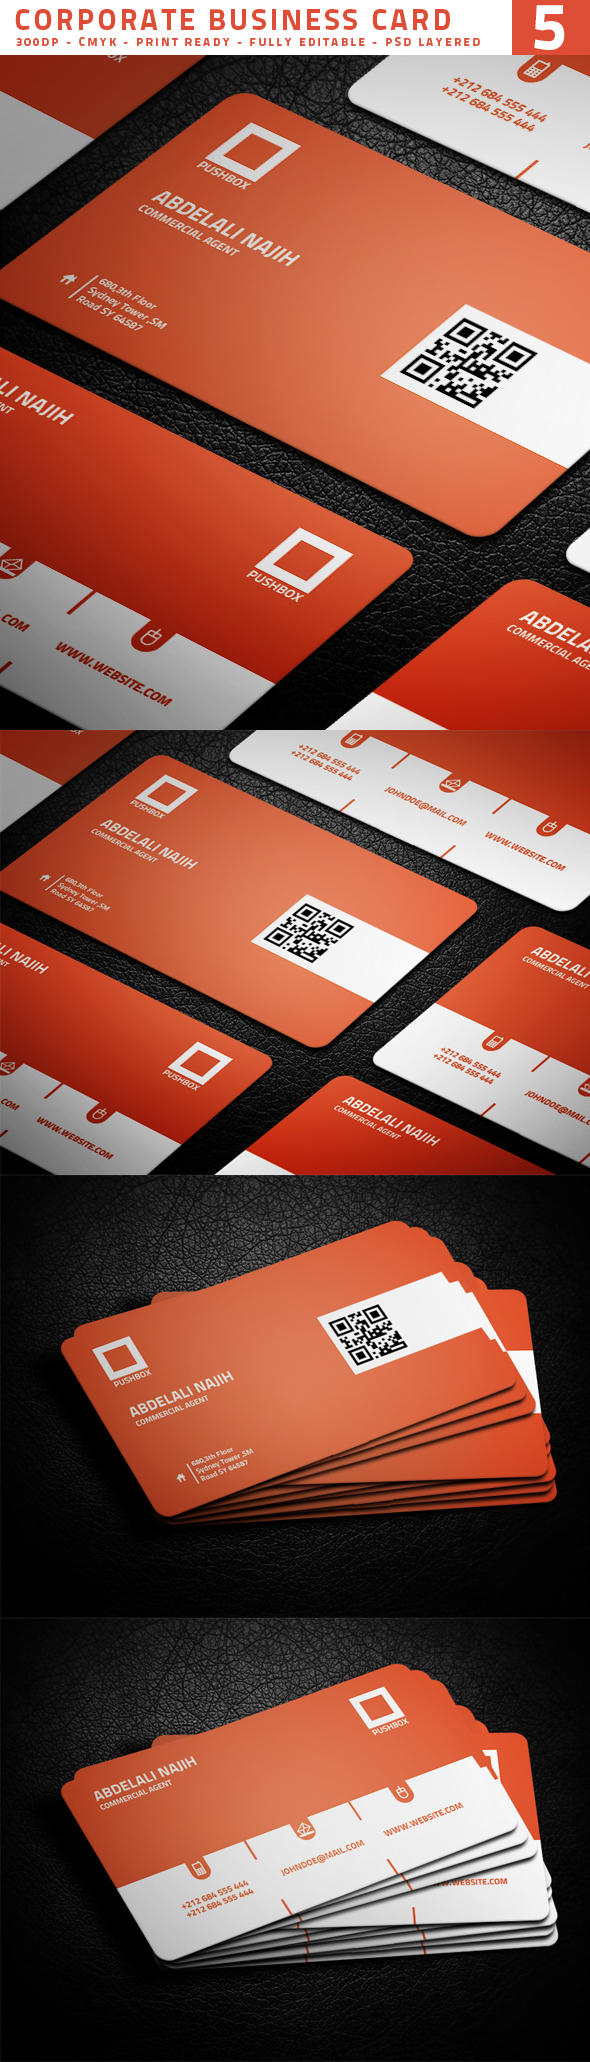 Creative Business Card Designing by KarimmovE - 19655